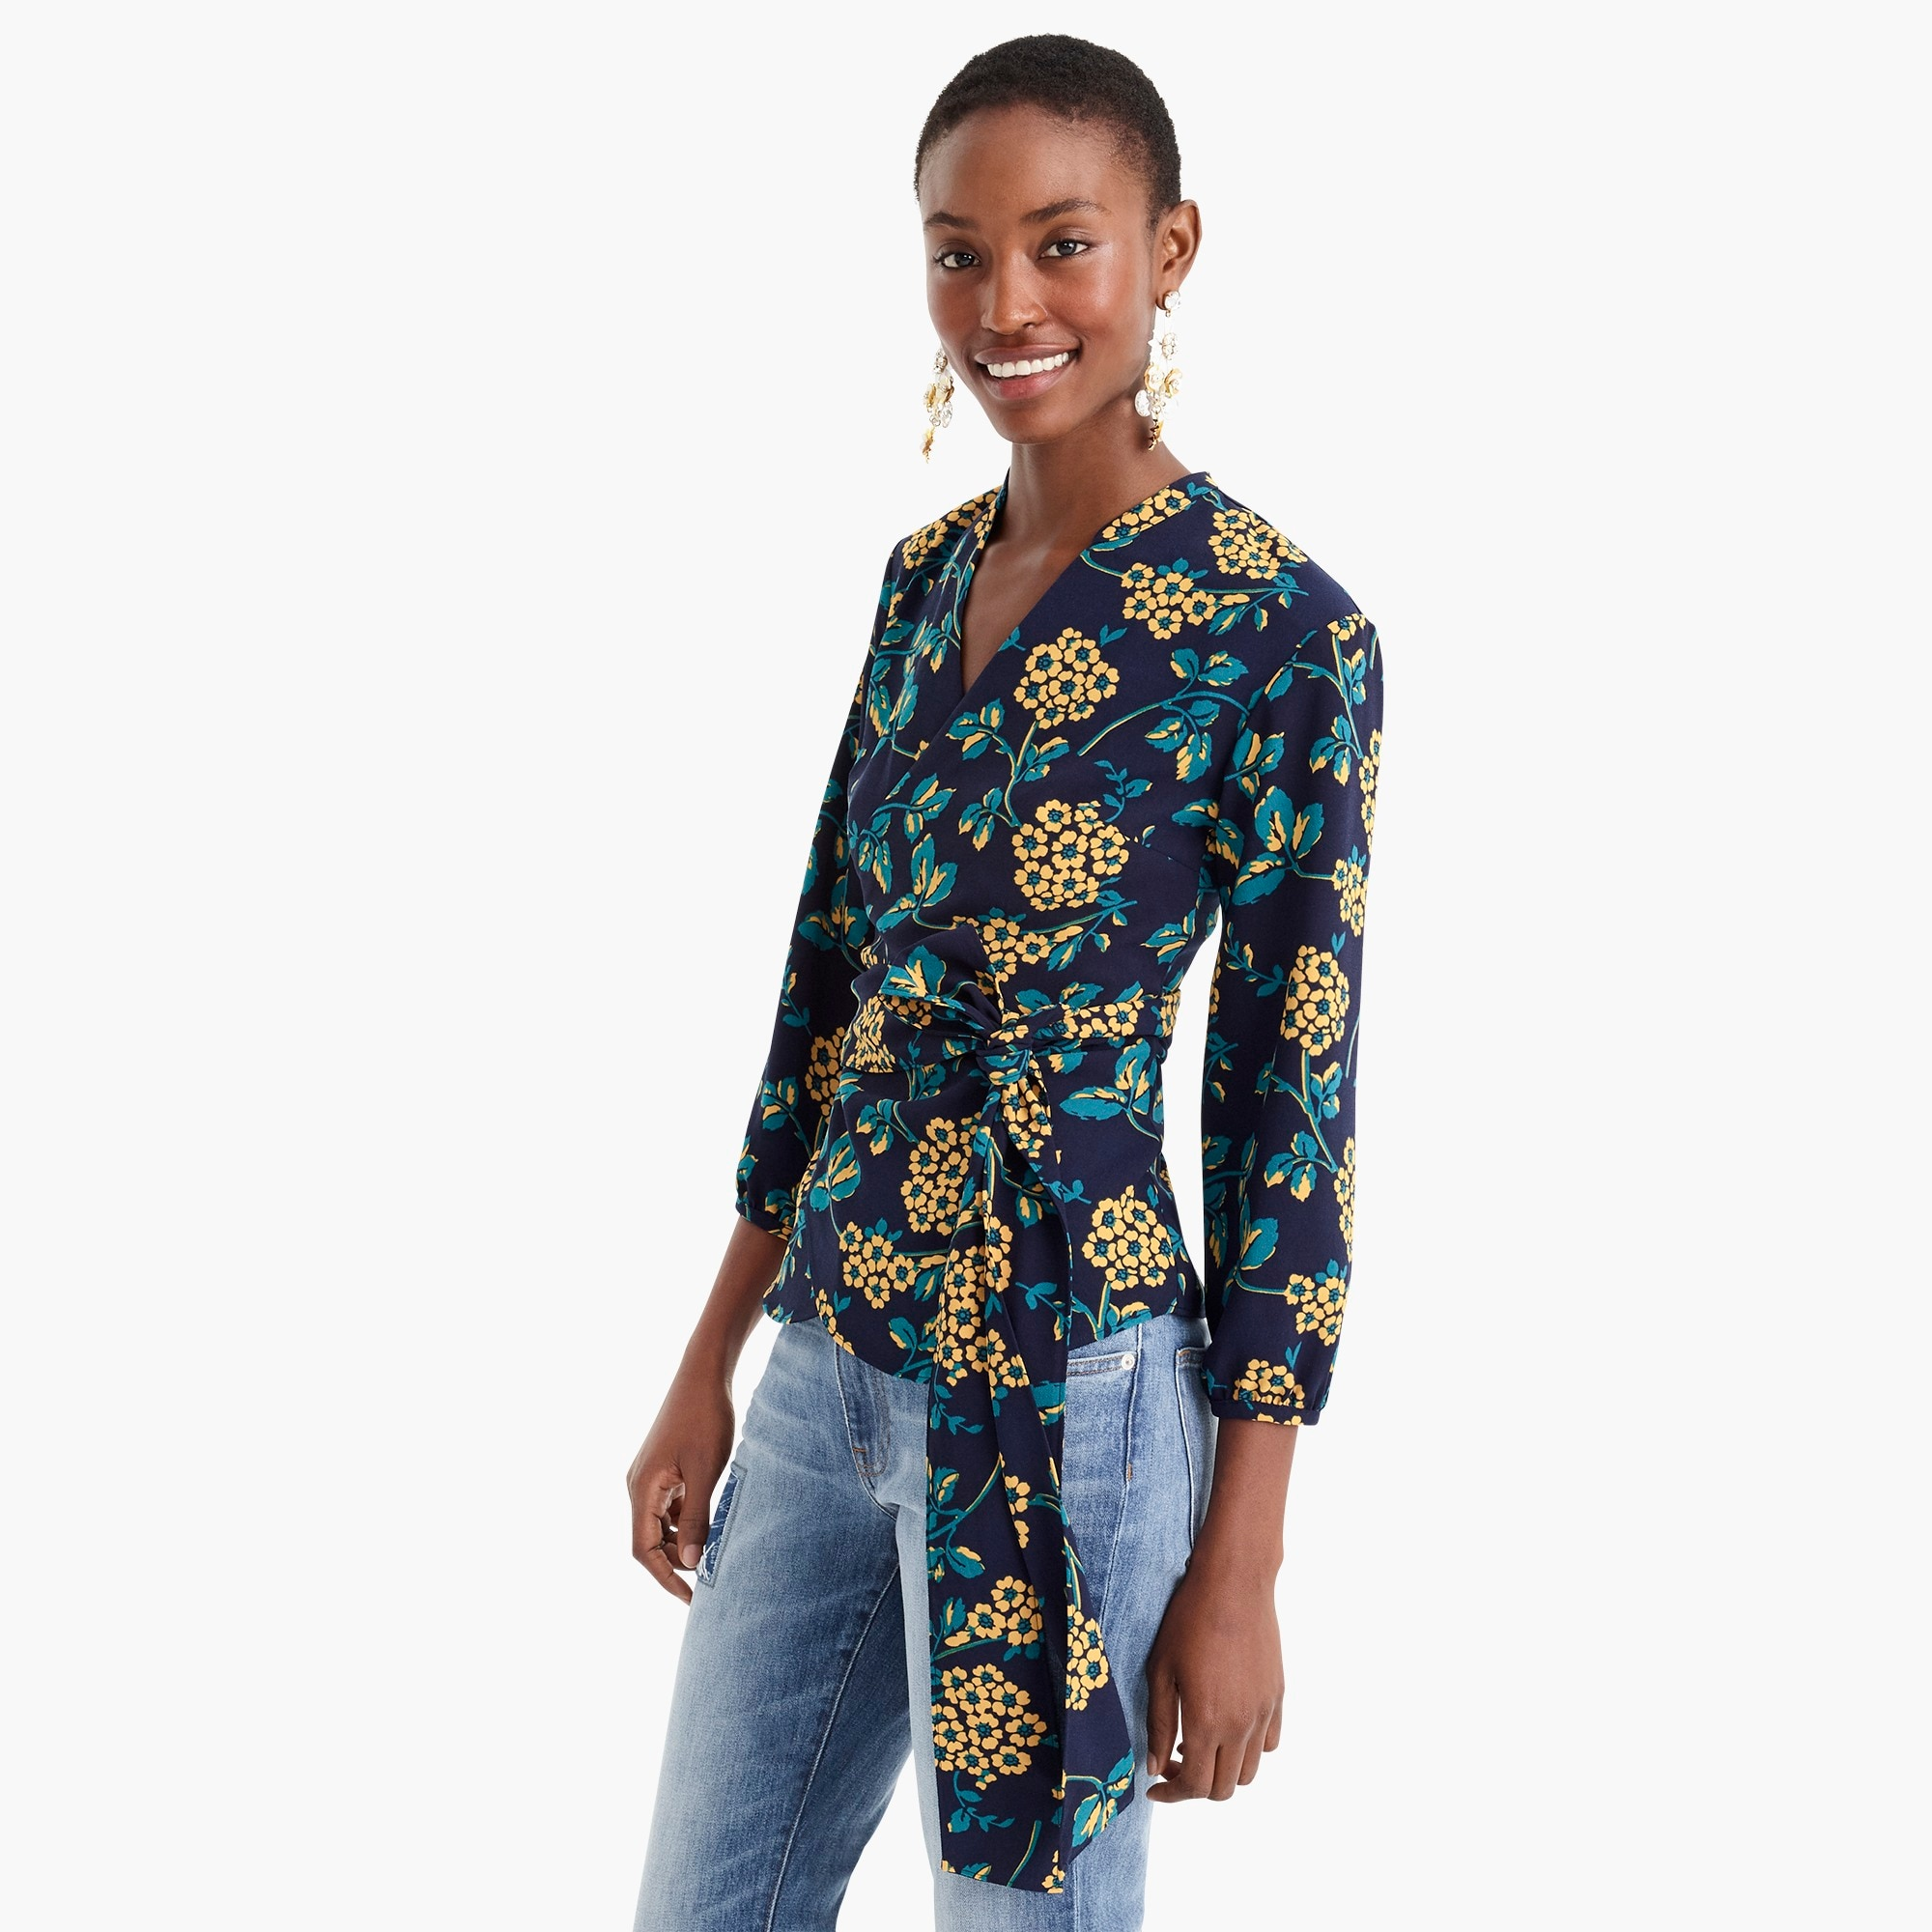 Image 4 for Petite drapey crepe wrap top in floral